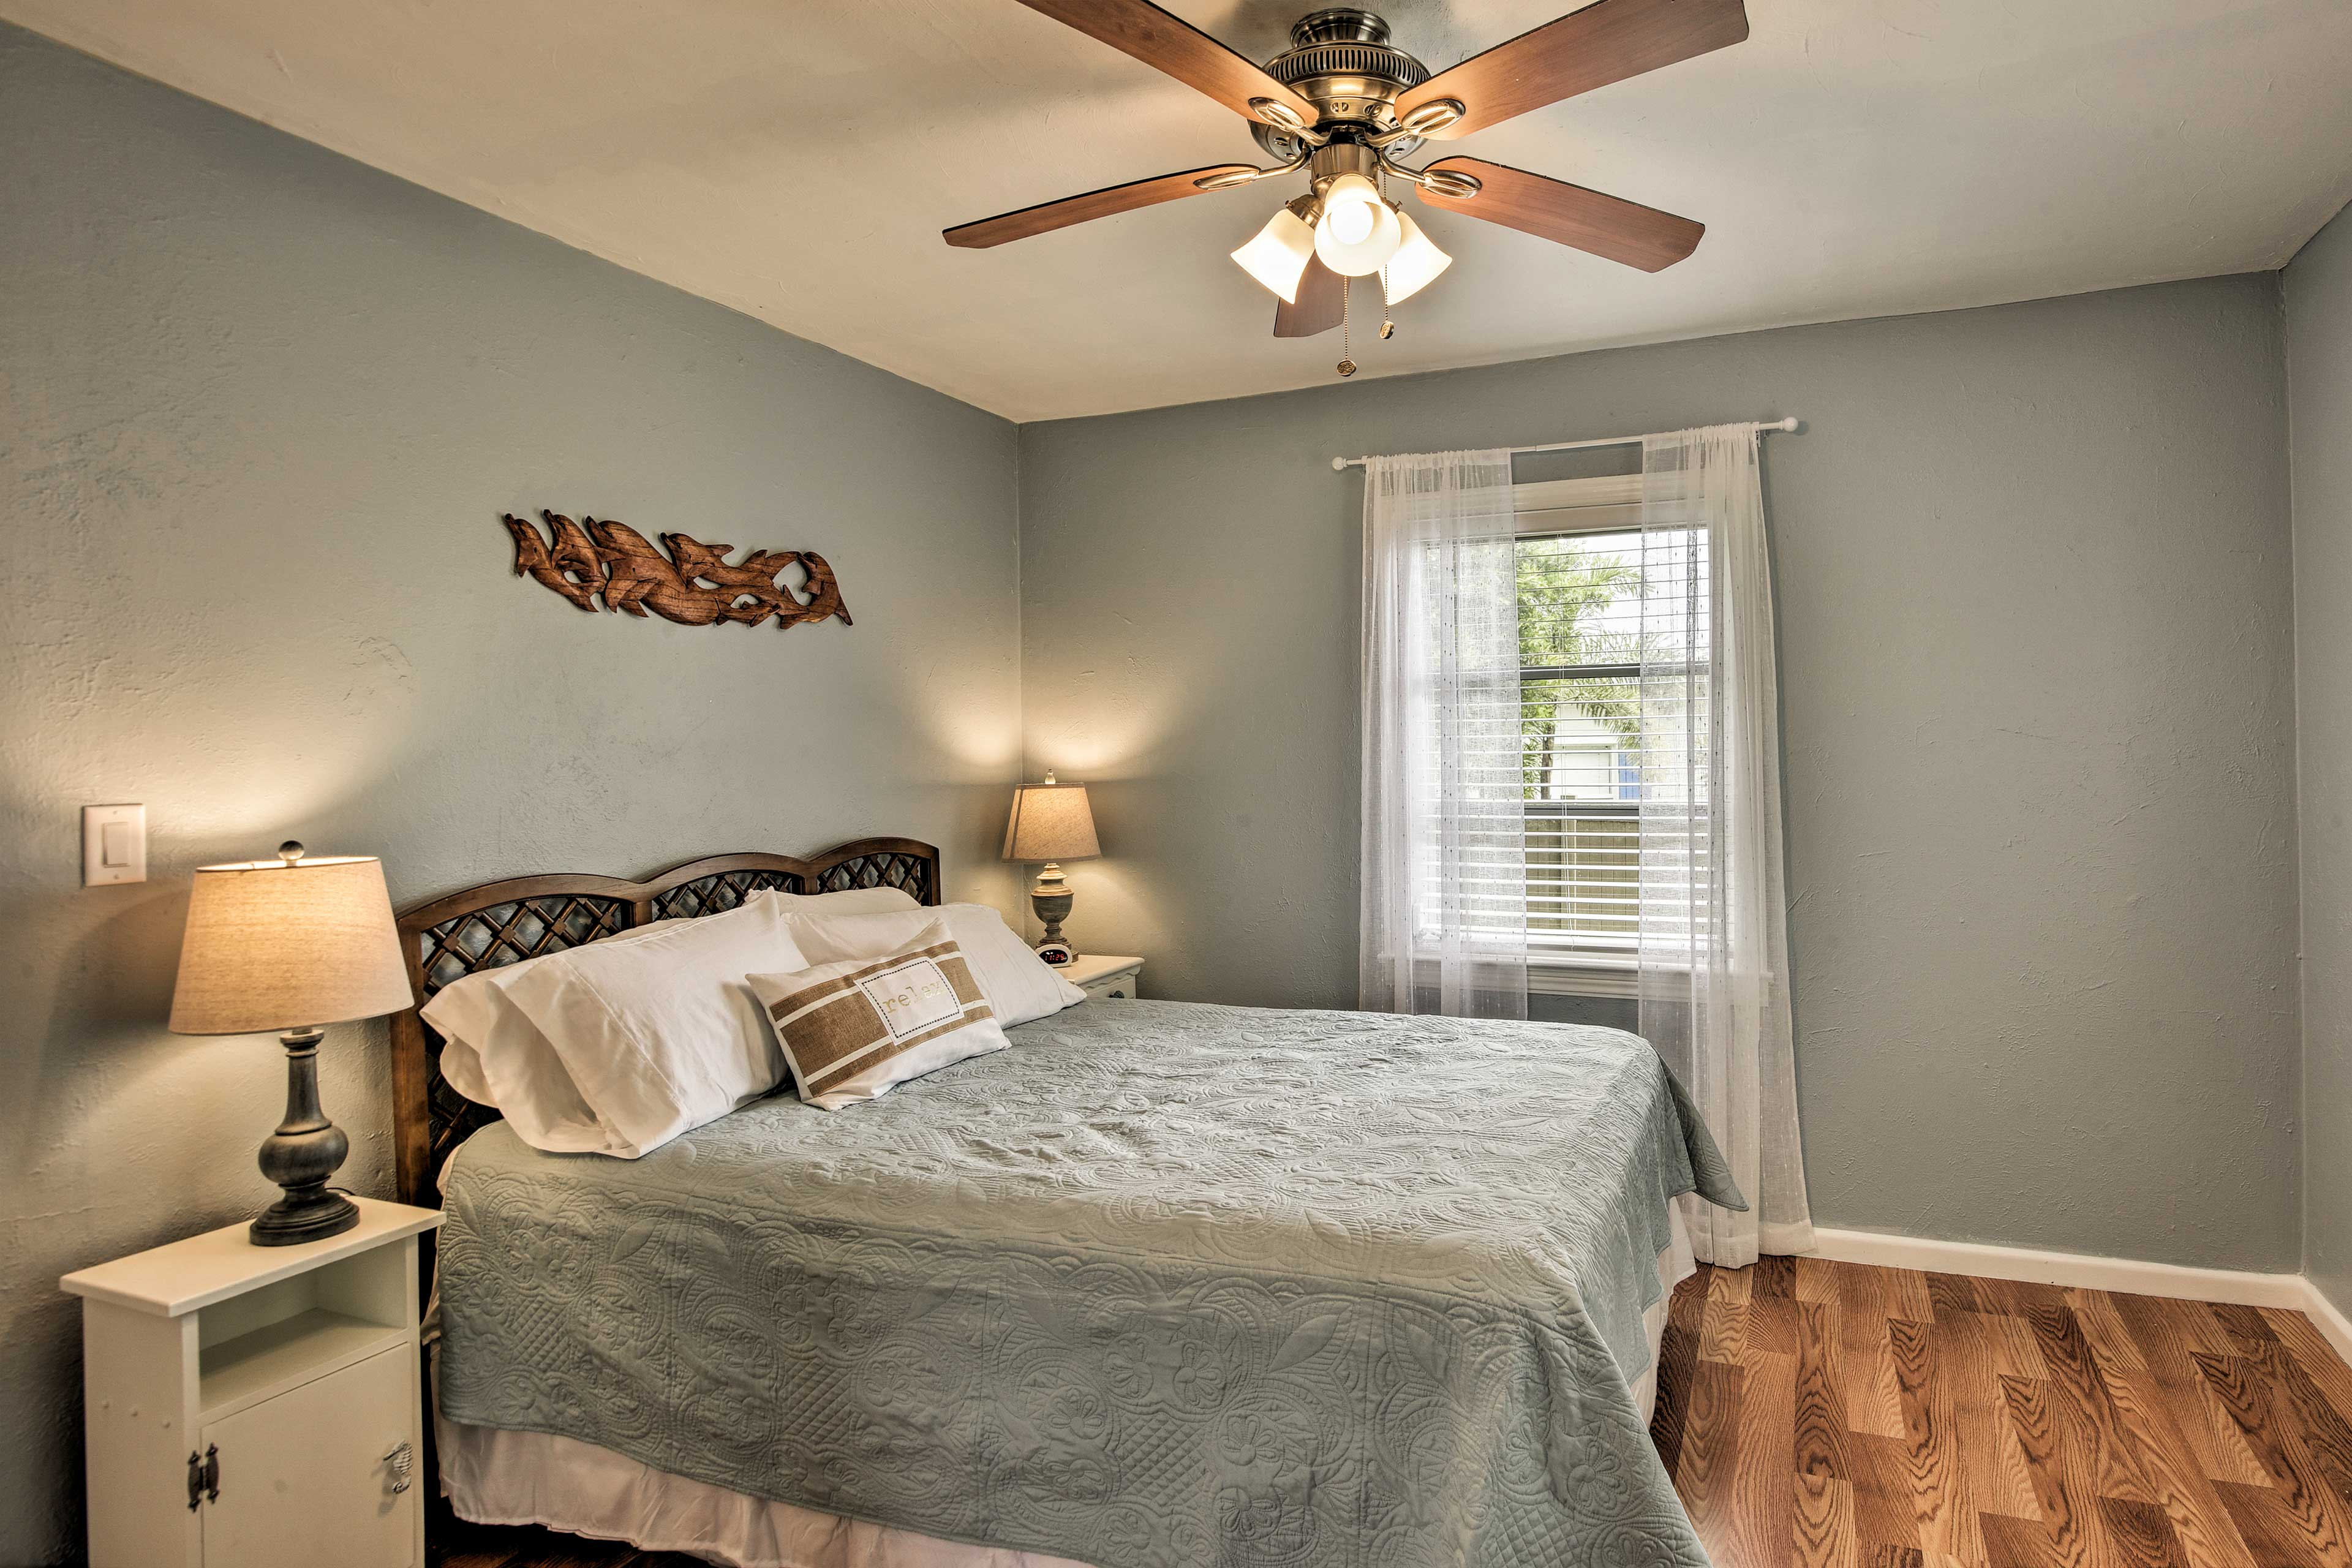 Use the ceiling fan to keep you cool as you drift off to sleep.